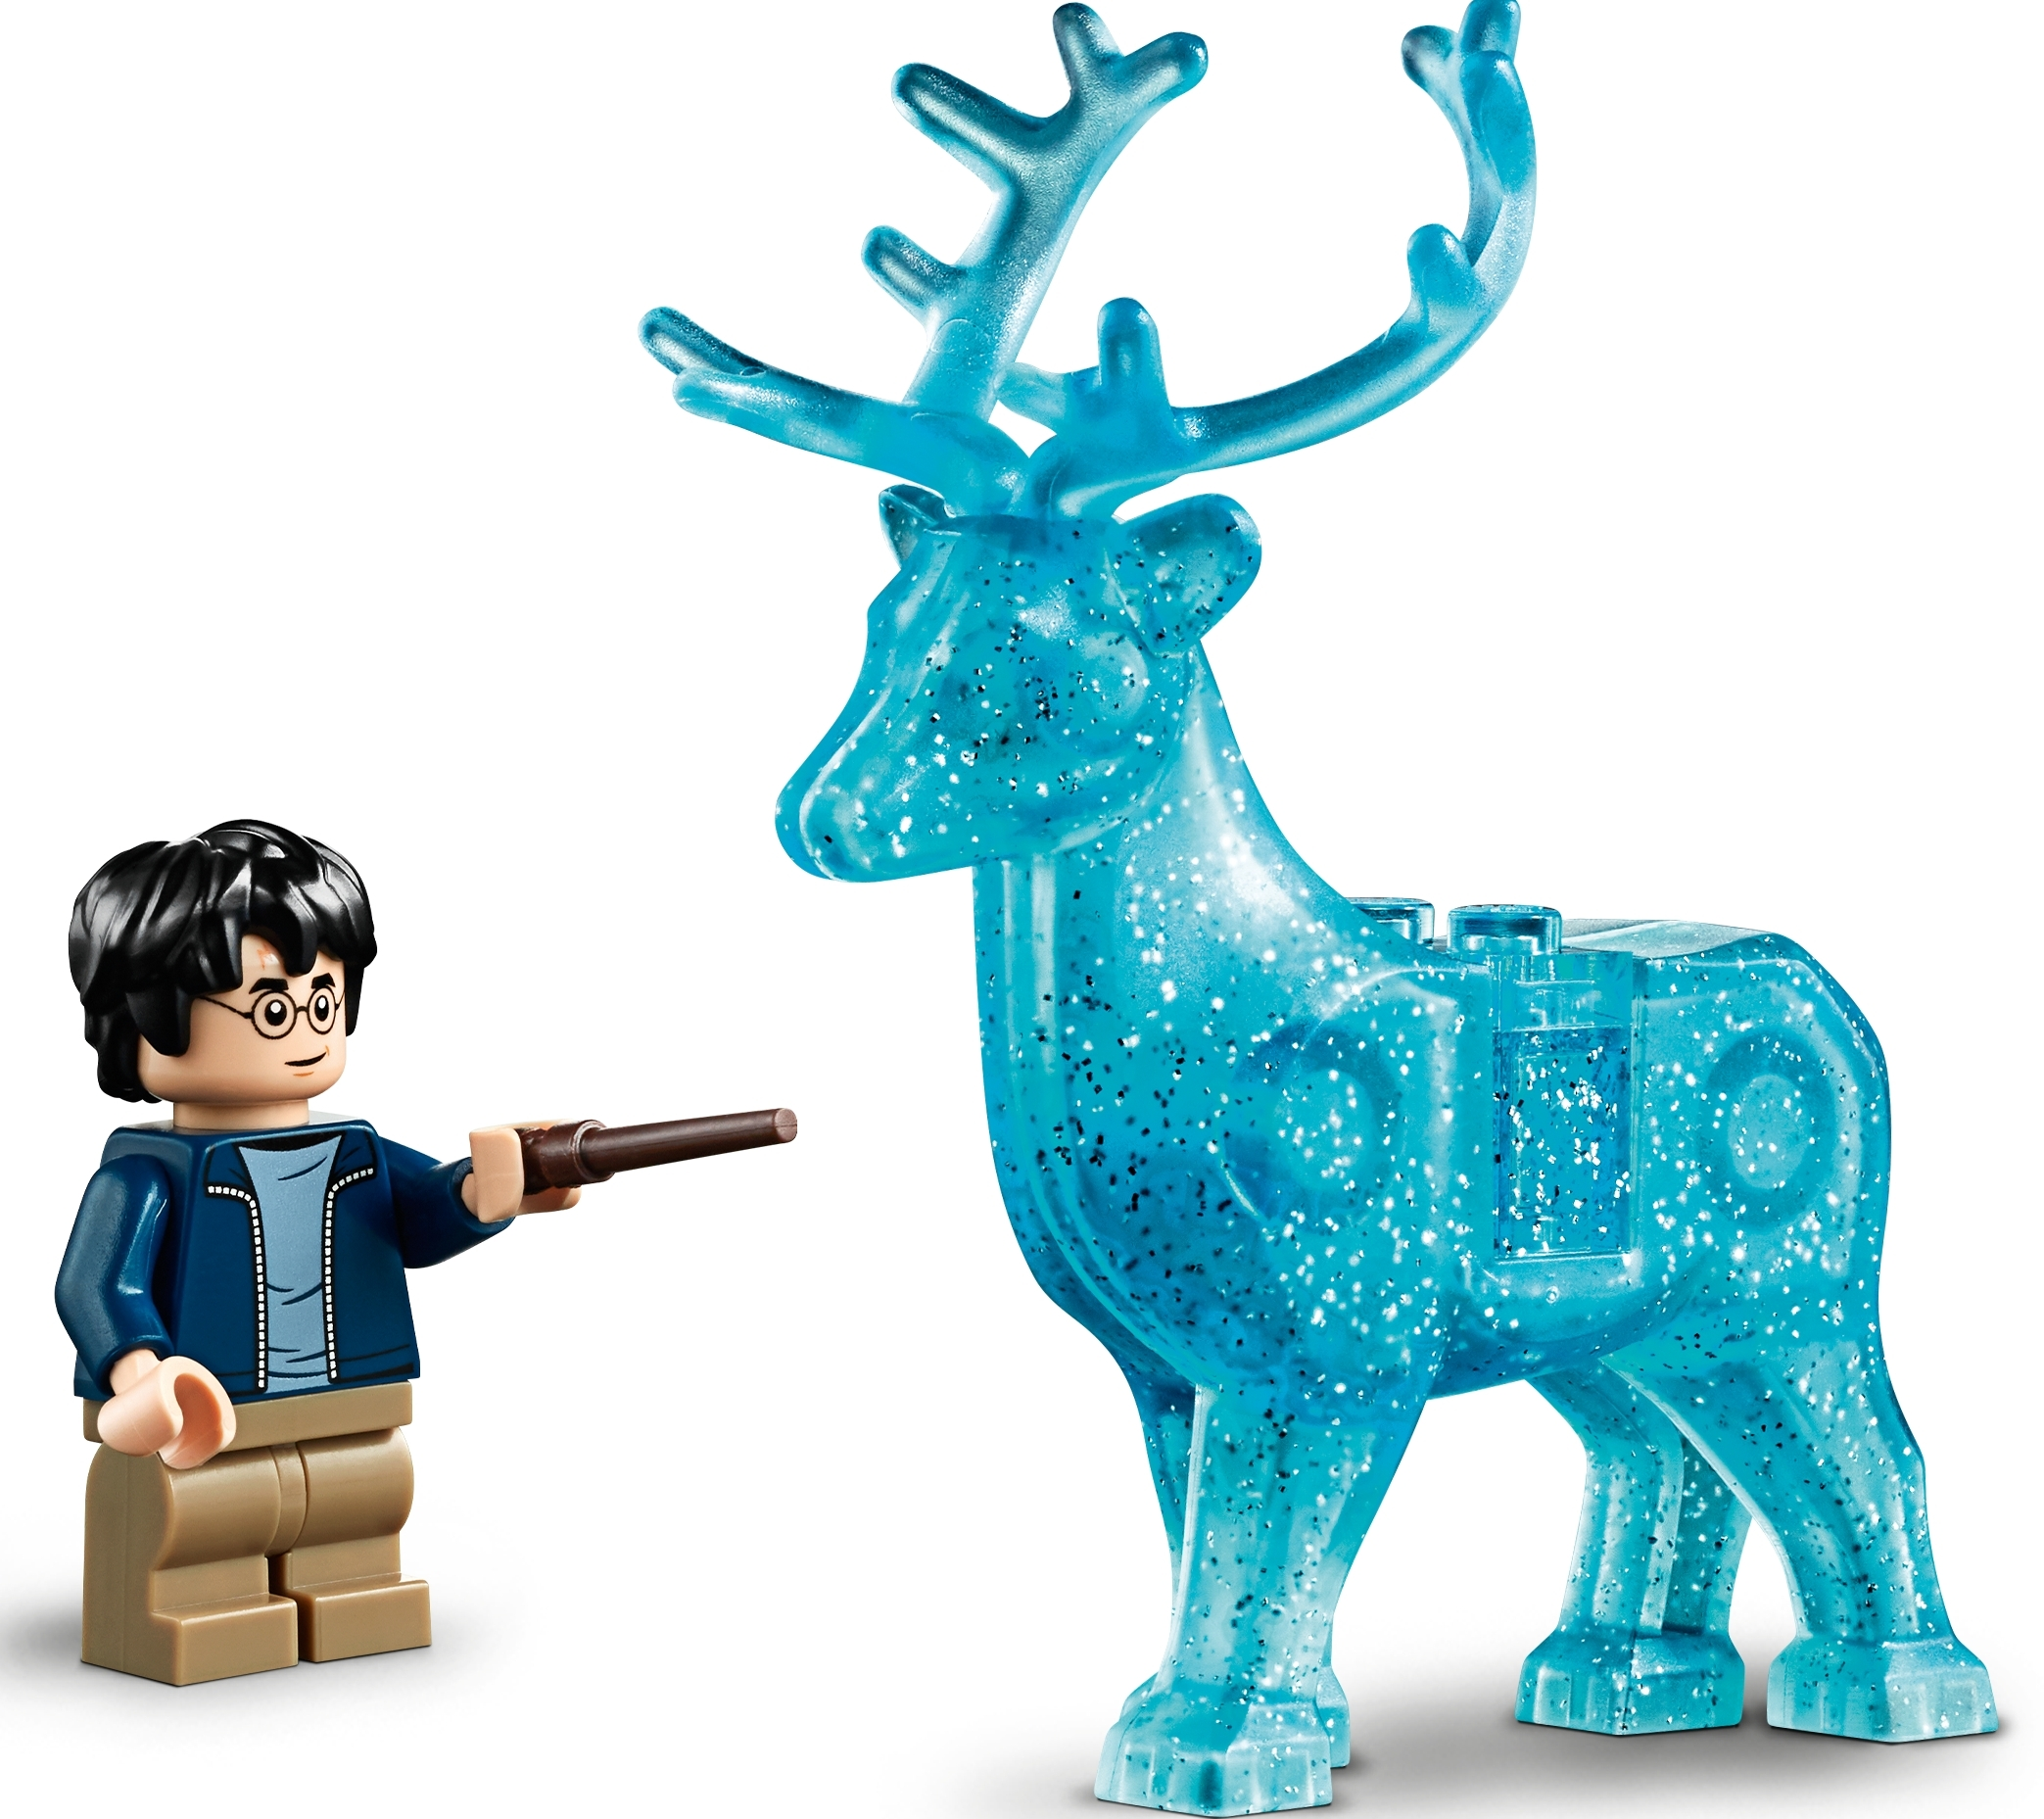 Lego Harry Potter Figure w// Wand /& Dual Face from Expecto Patronum 75945 NEW